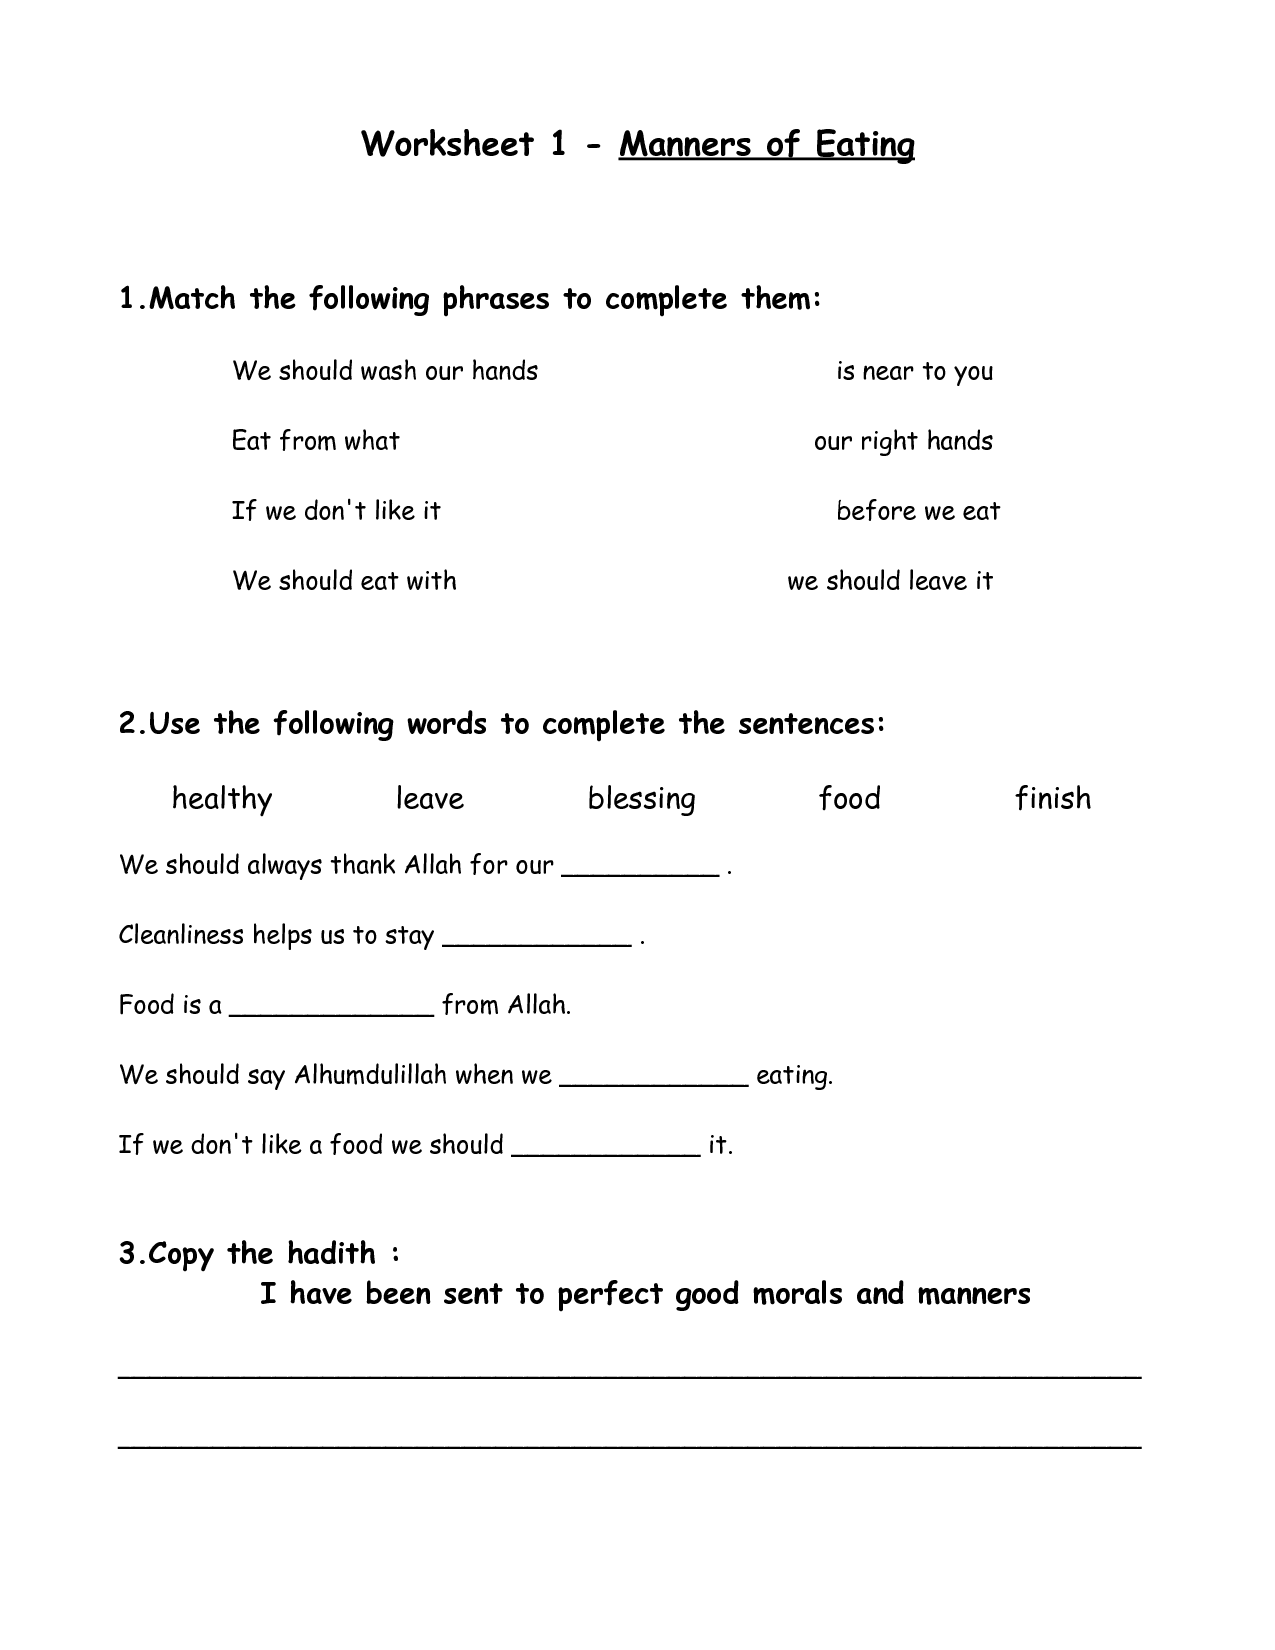 Printables Manners Worksheets table manners printable worksheets worksheet 1 of eating